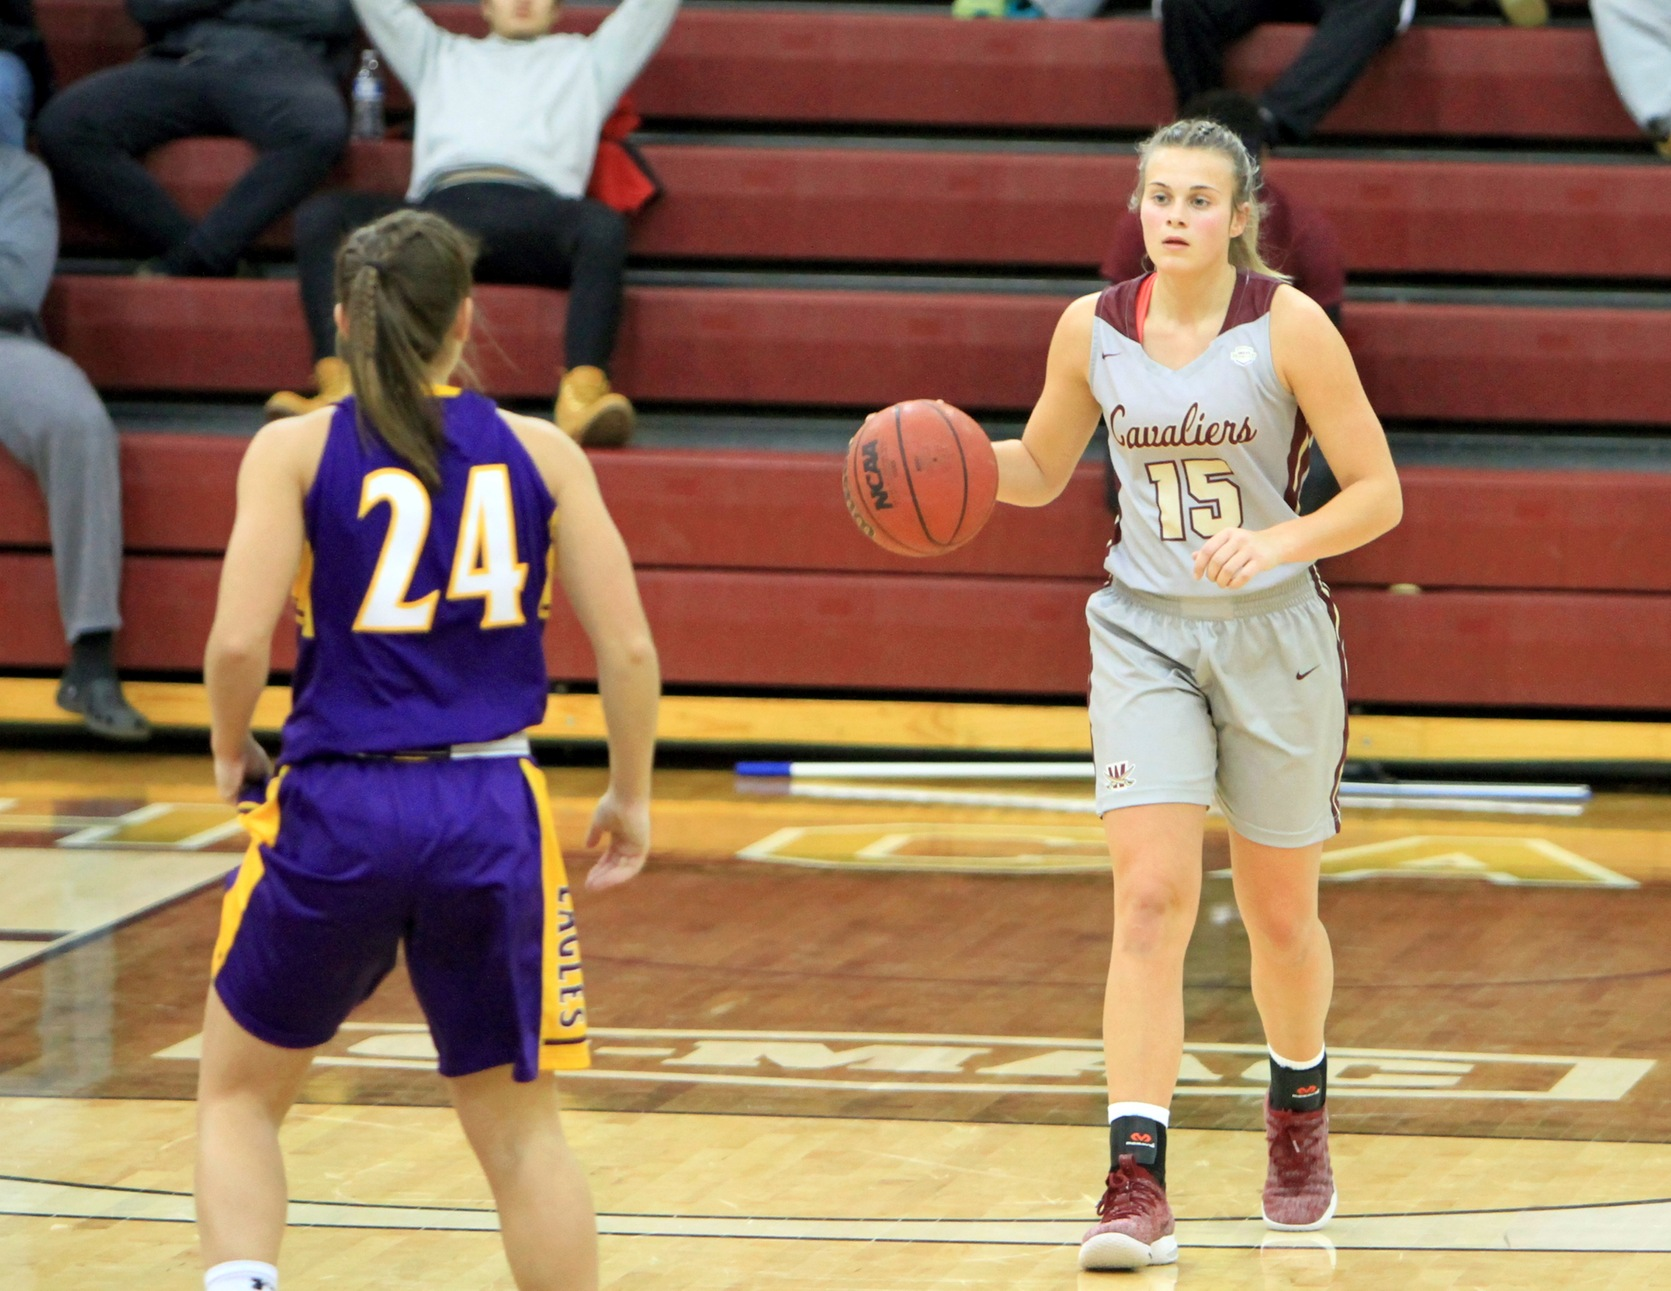 Scarton Sets Career-High in Cavs Victory, 87-73